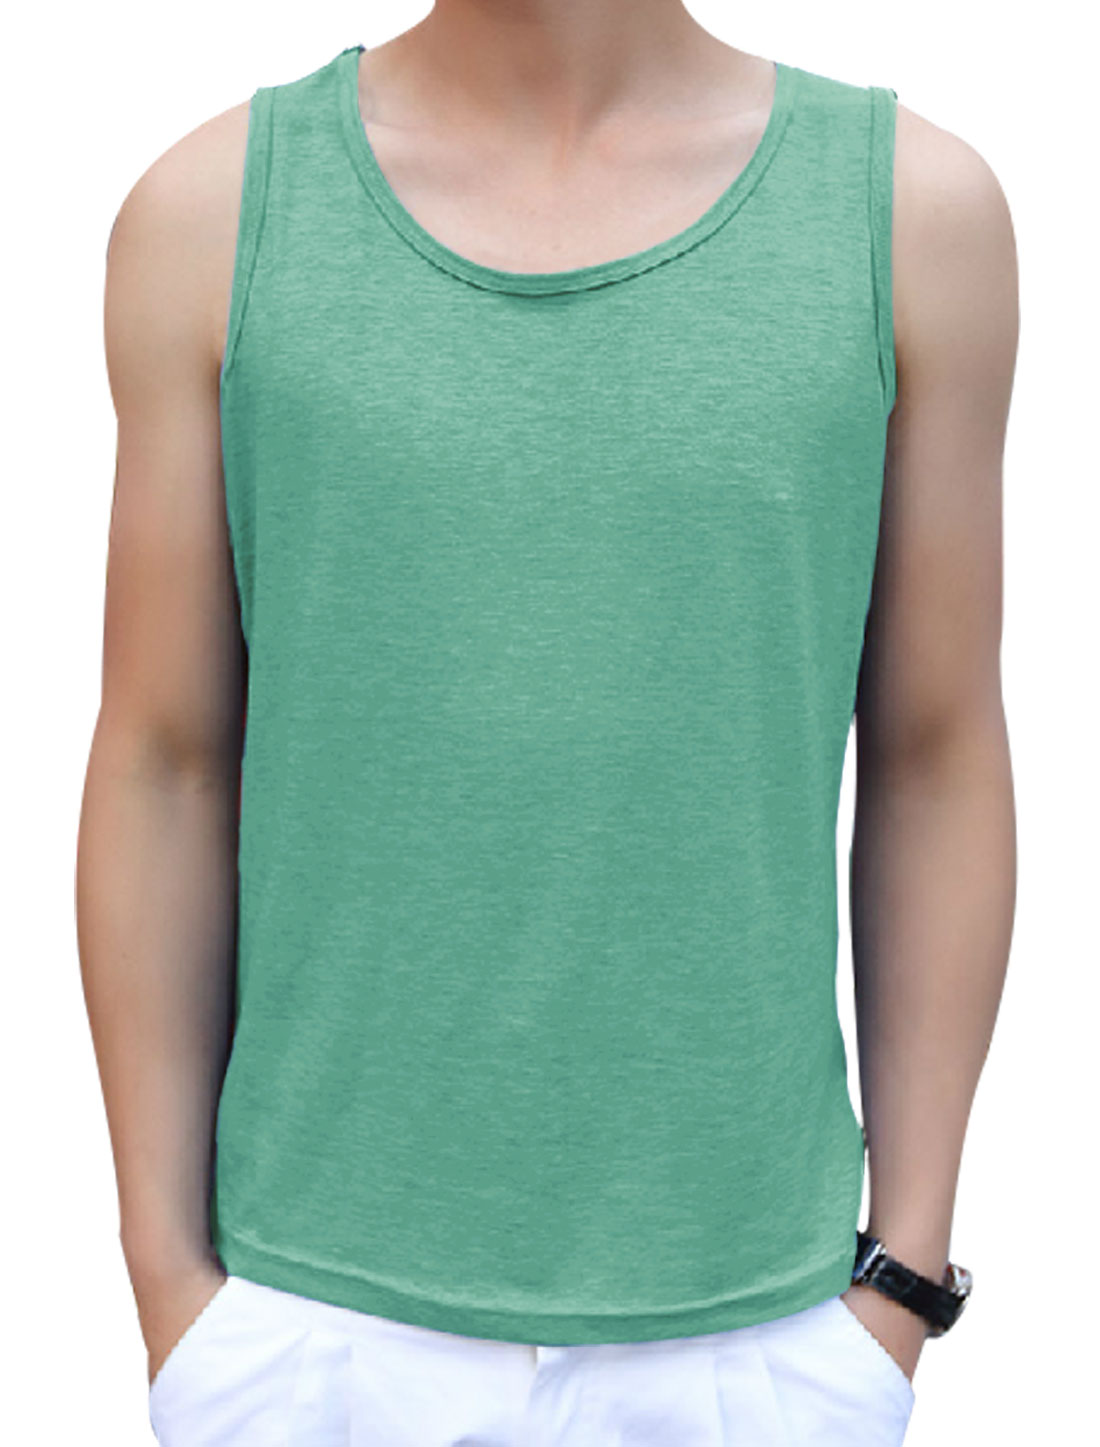 Men's Round Neck Sleeveless Casual Top Green M